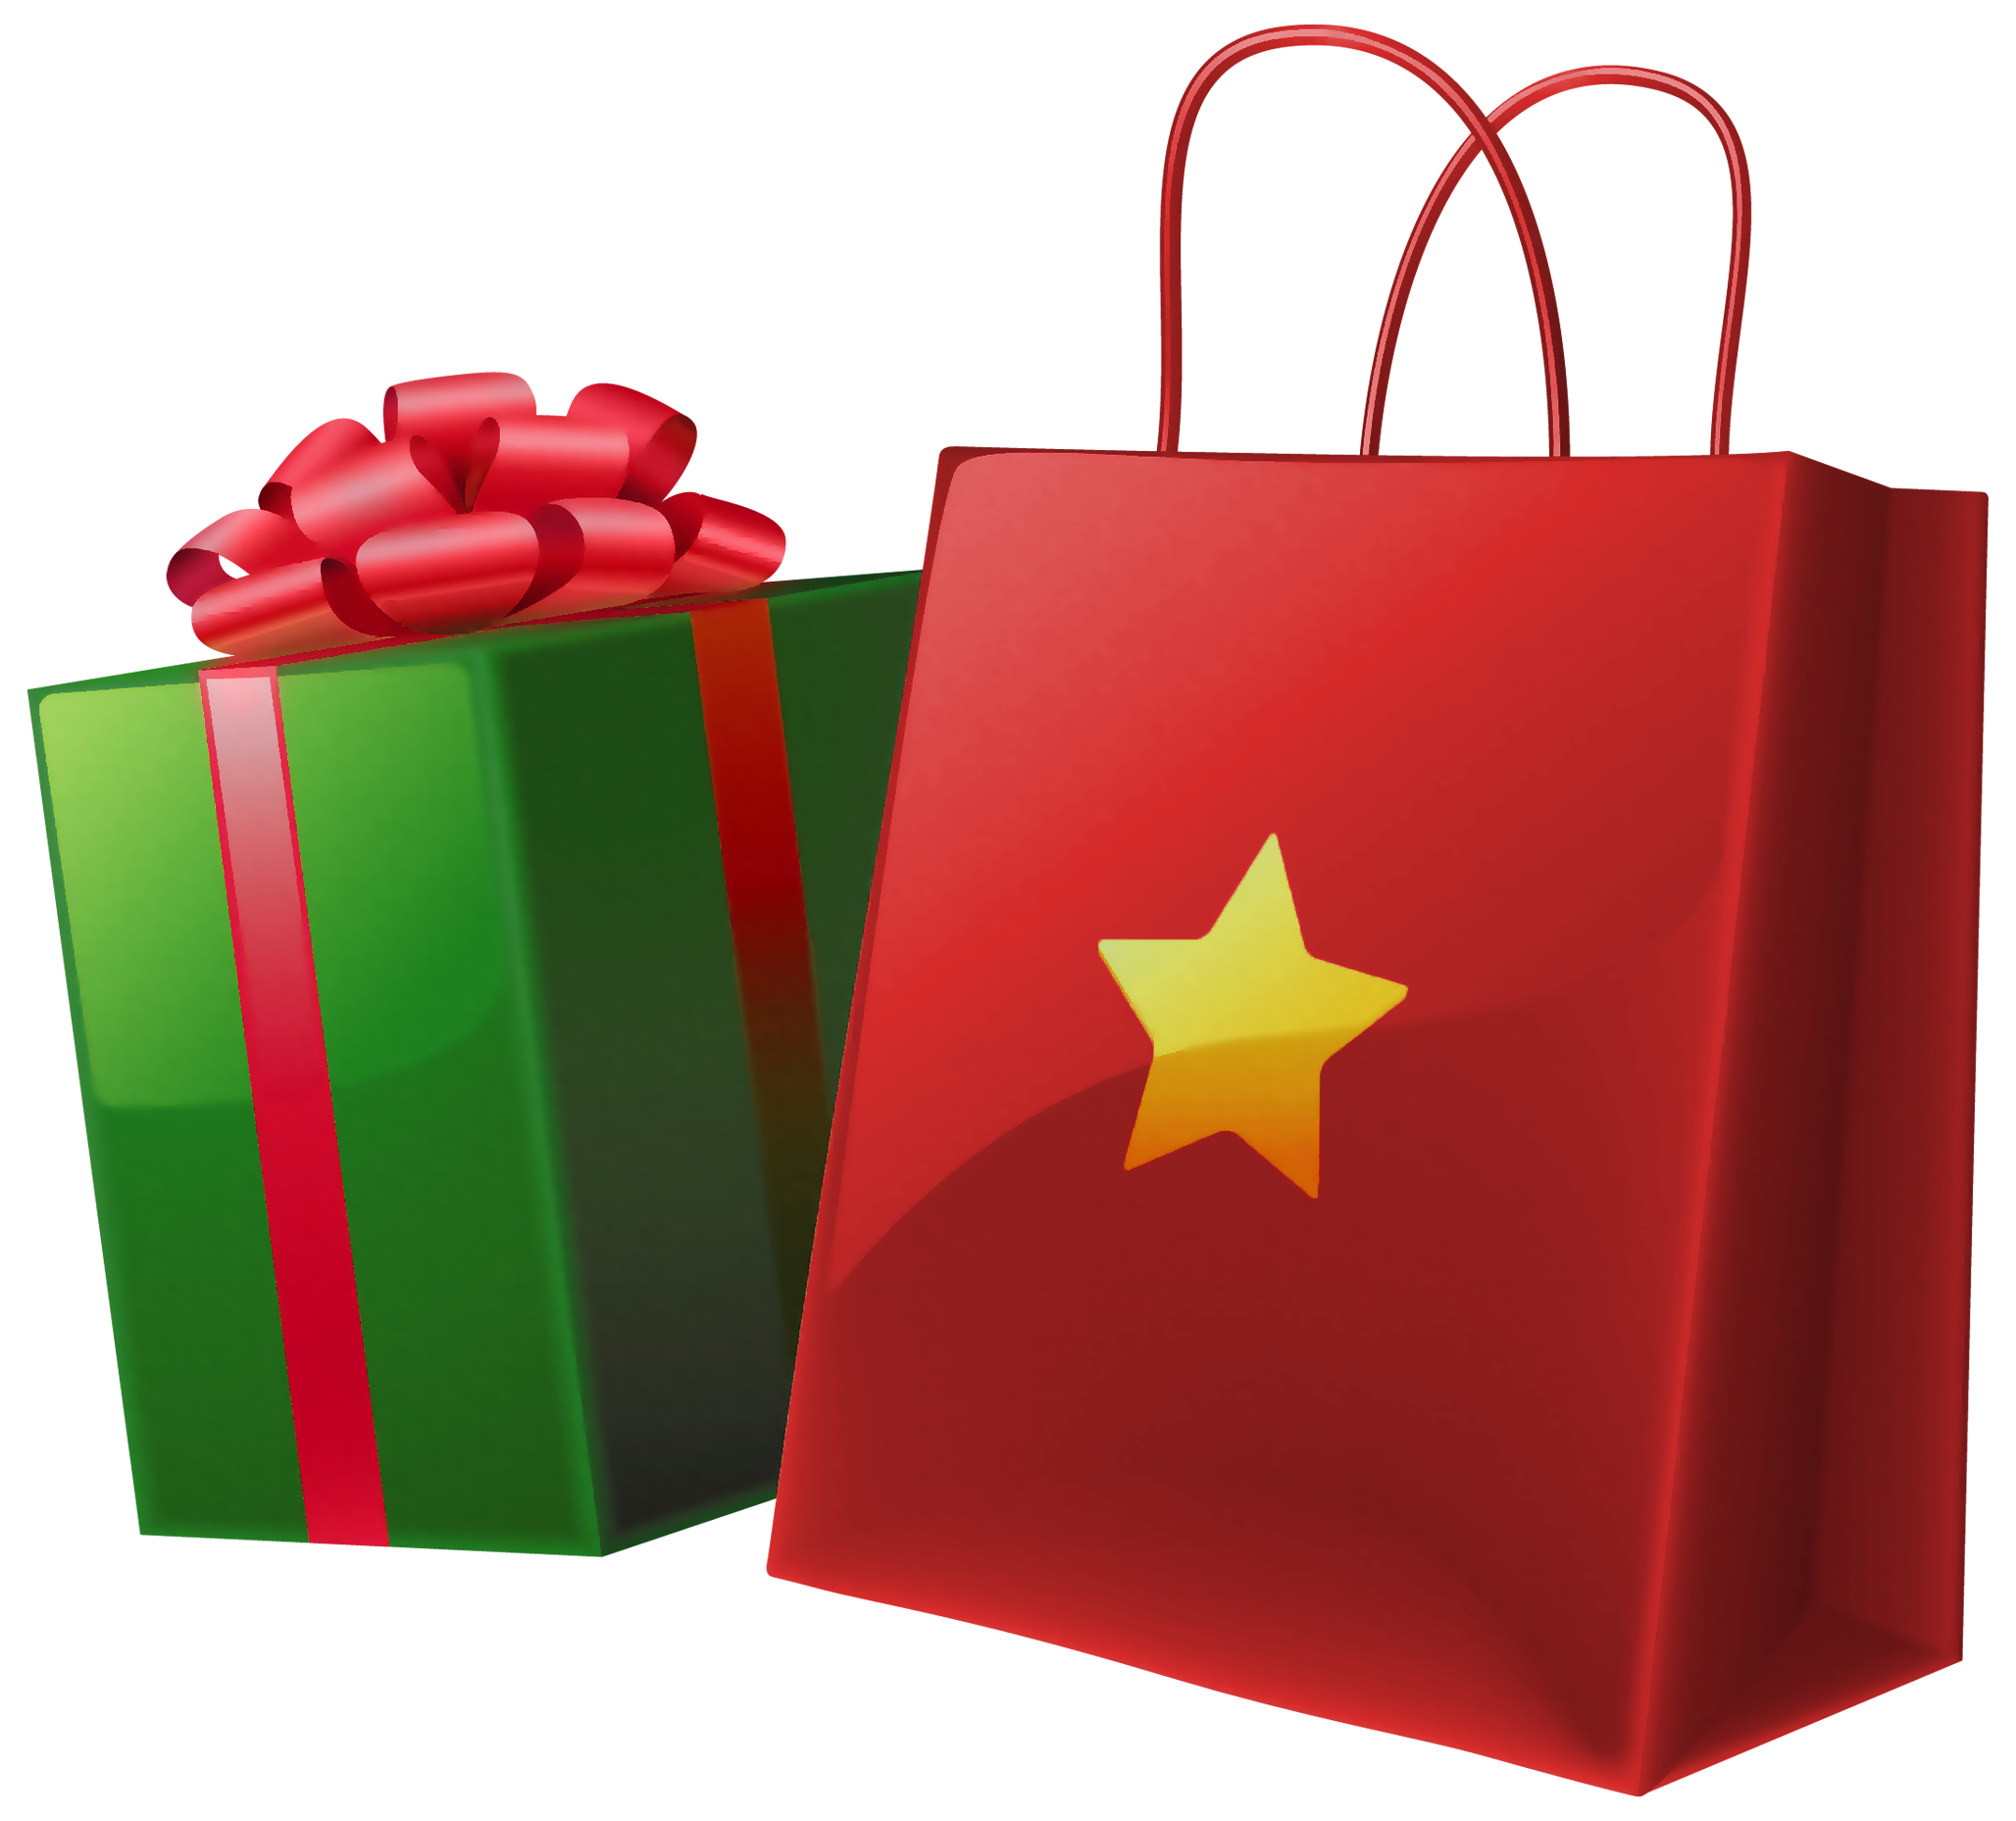 Christmas bag of gifts clipart.